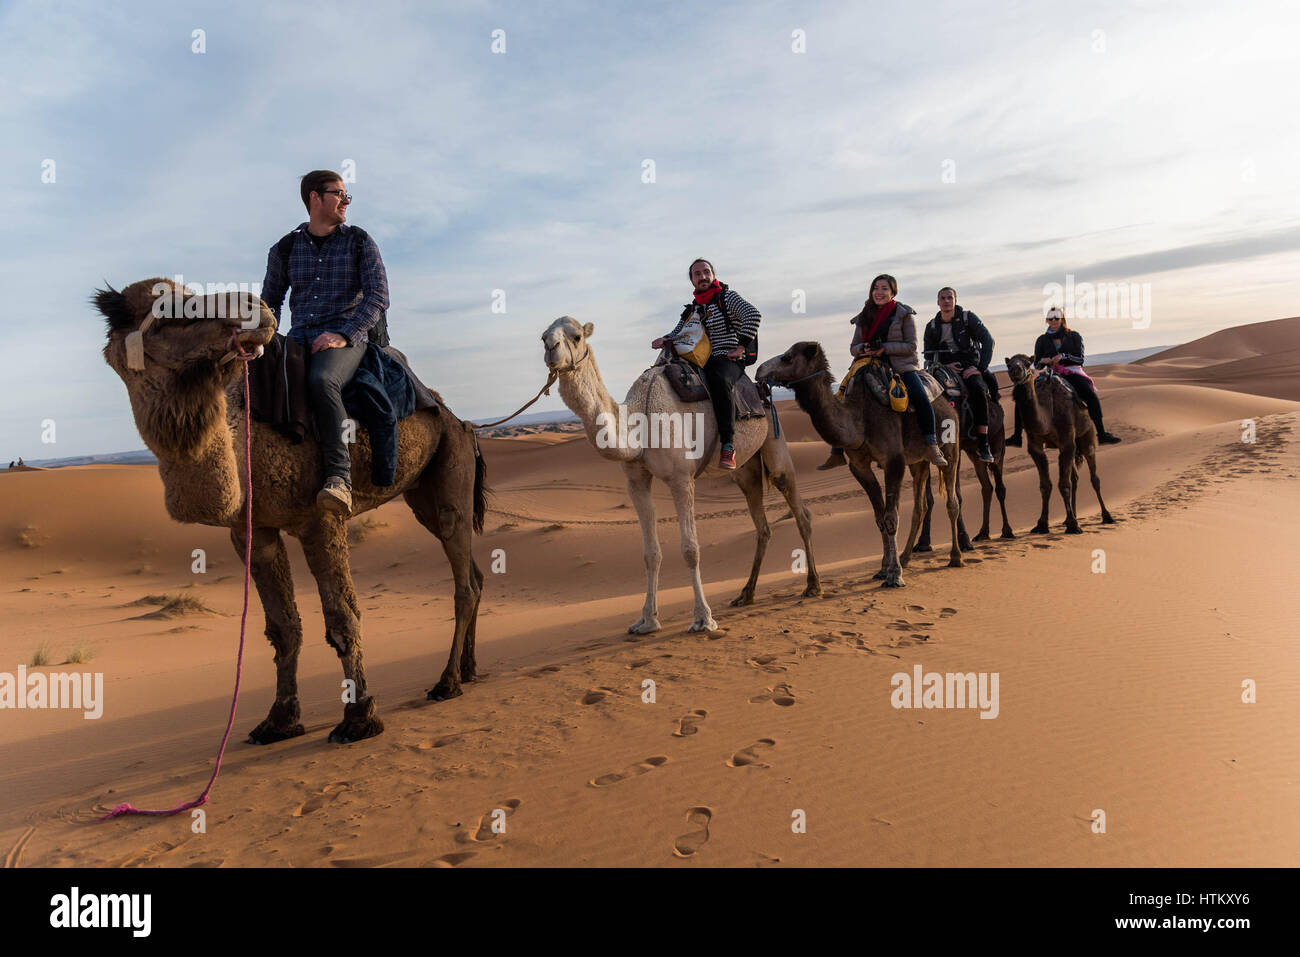 Tourists during a camel ride - Stock Image